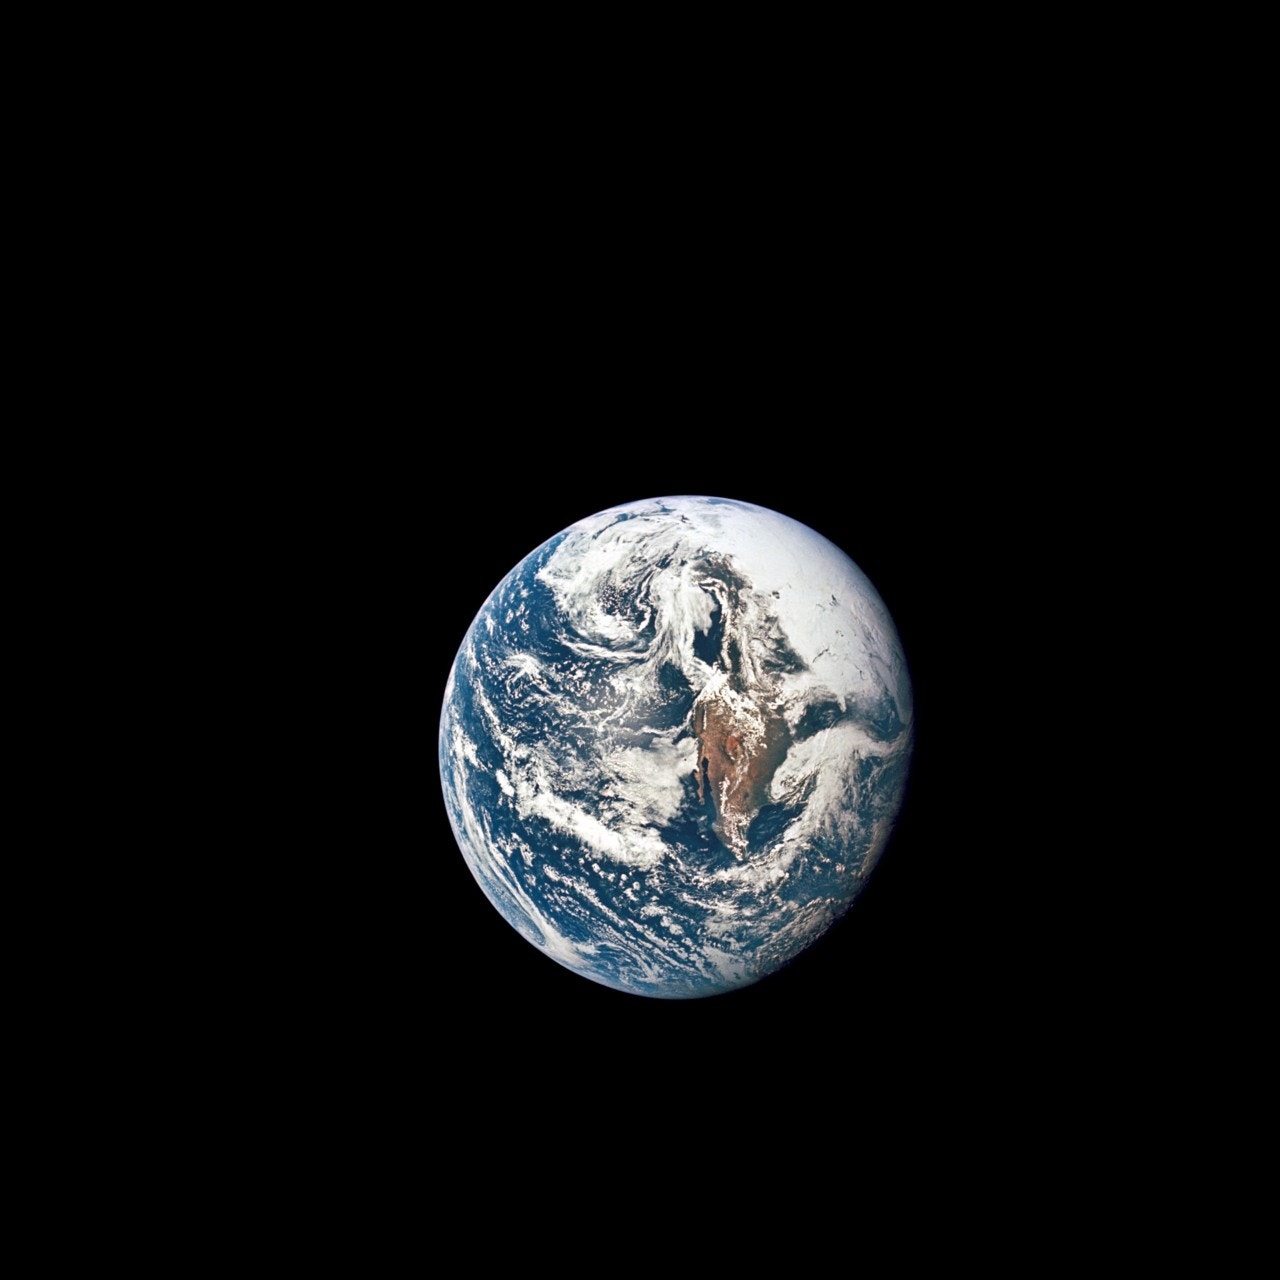 NASA showed off an image of what Earth looked like in 1969